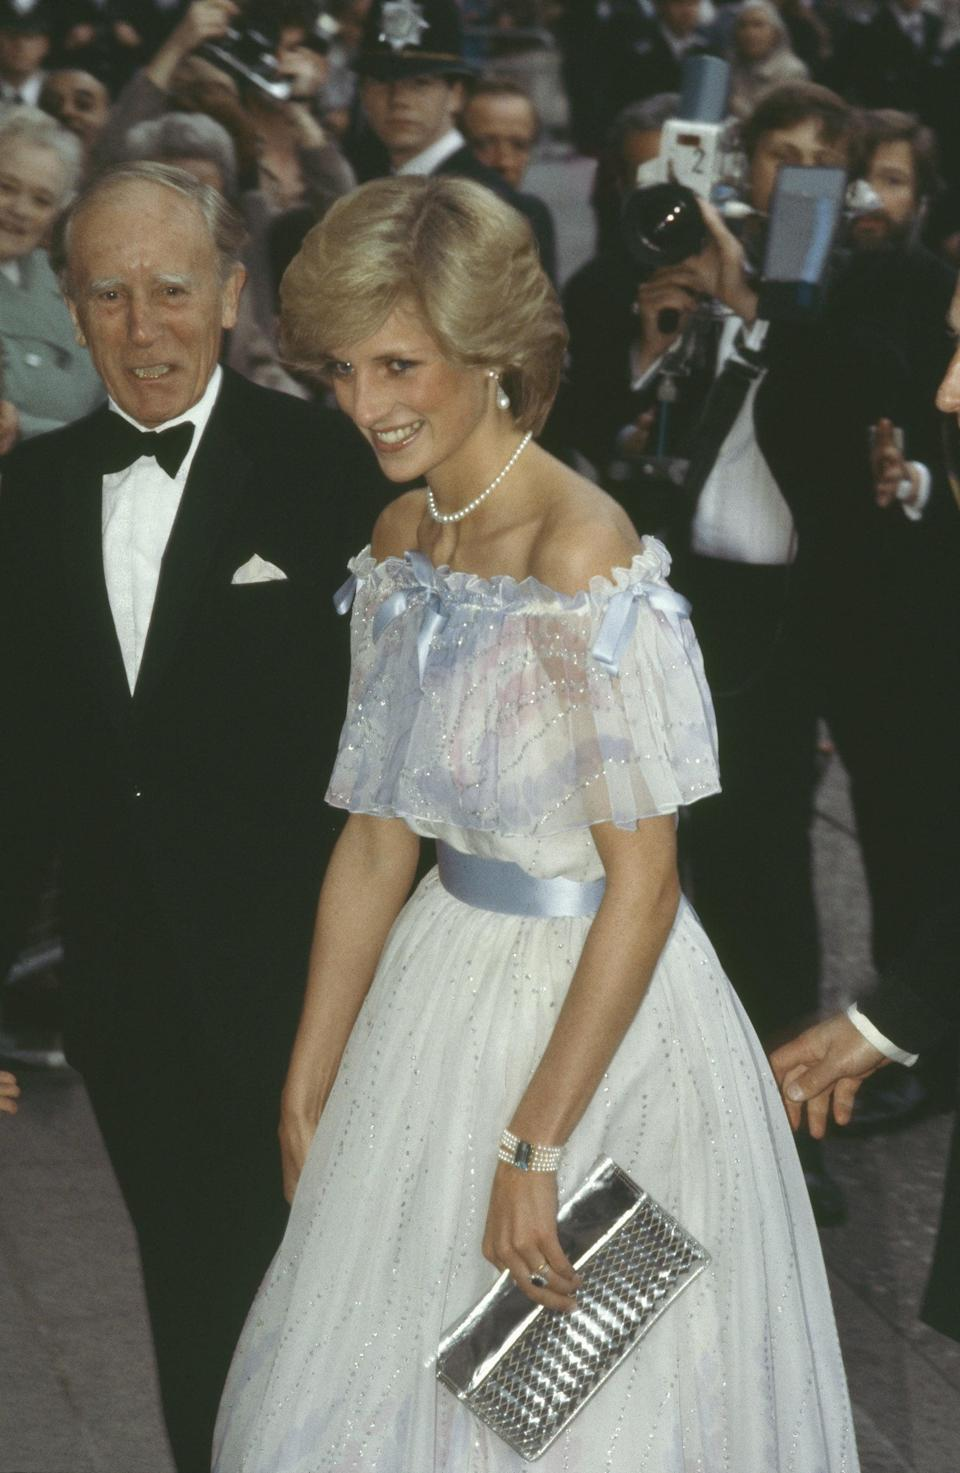 <p>Diana's 1983 evening gown was jazzed up by yet another metallic clutch, this one with quilted texture, at the Royal Albert Hall in London.</p>